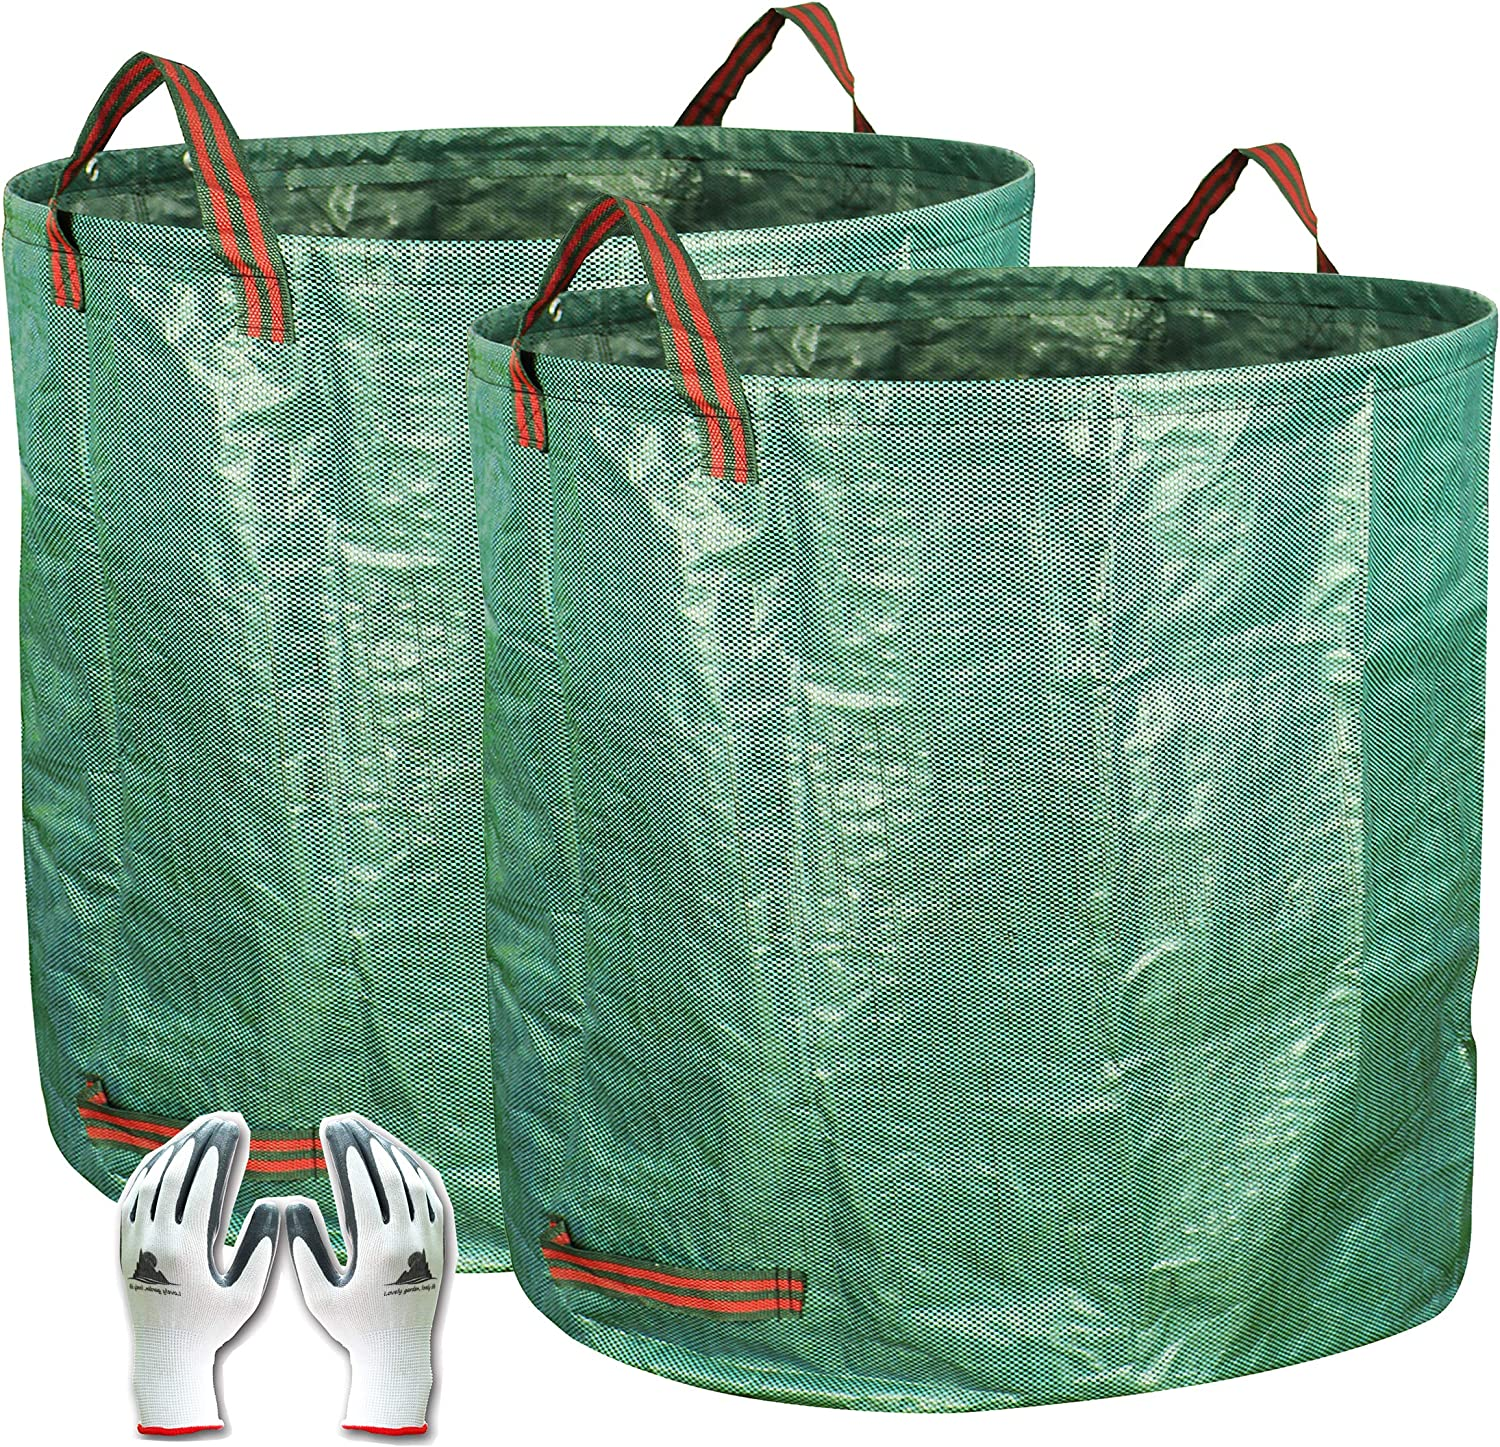 Gardzen 2-Pack 132 Gallons Gardening Bag with Double Bottom Layer - Extra Large Reuseable Heavy Duty Gardening Bags, Lawn Pool Garden Leaf Waste Bag, Comes with Gloves